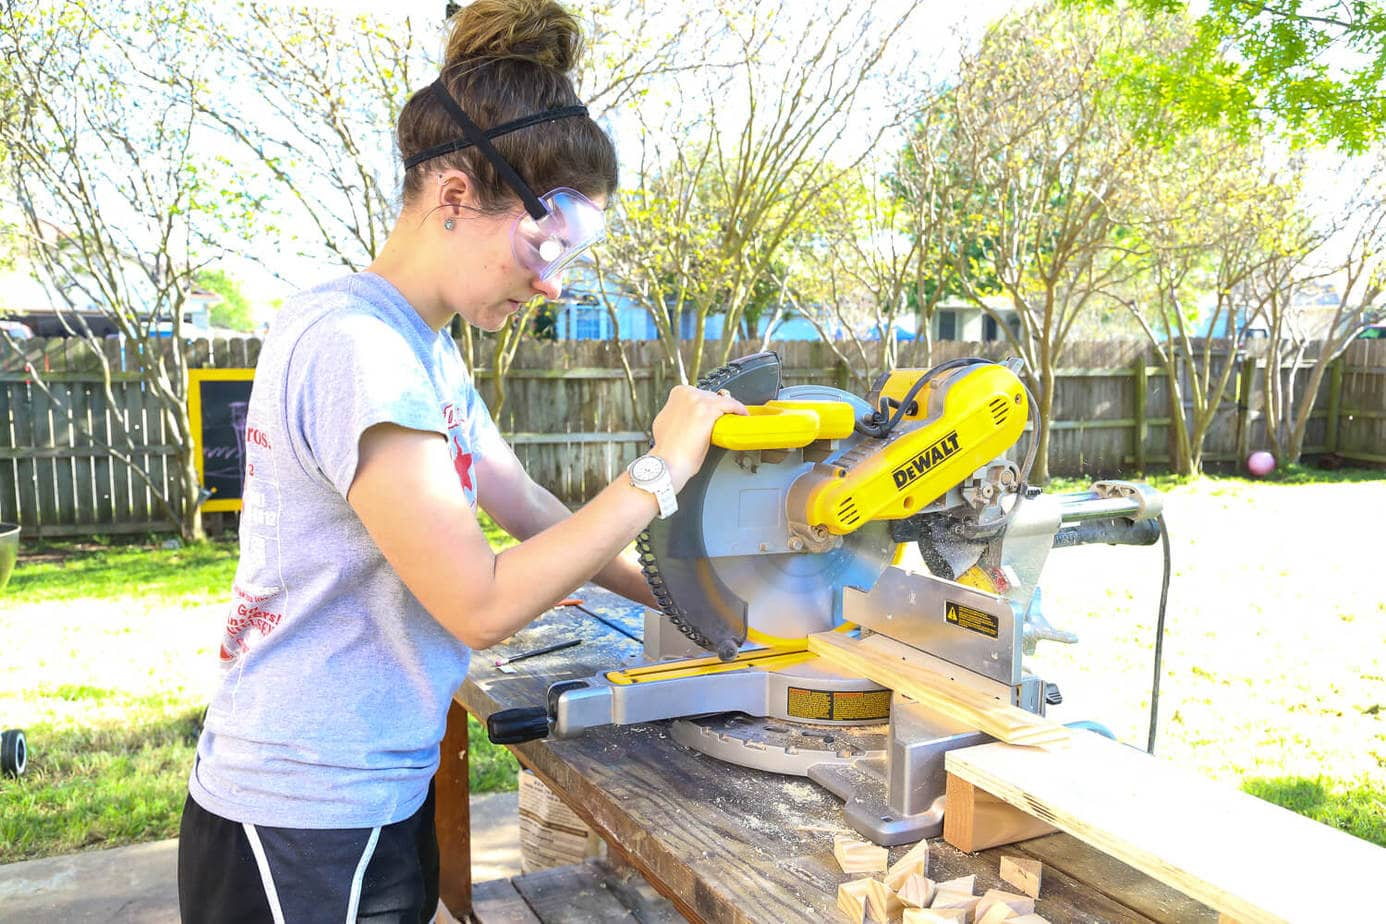 Woman outside using a miter saw on a table